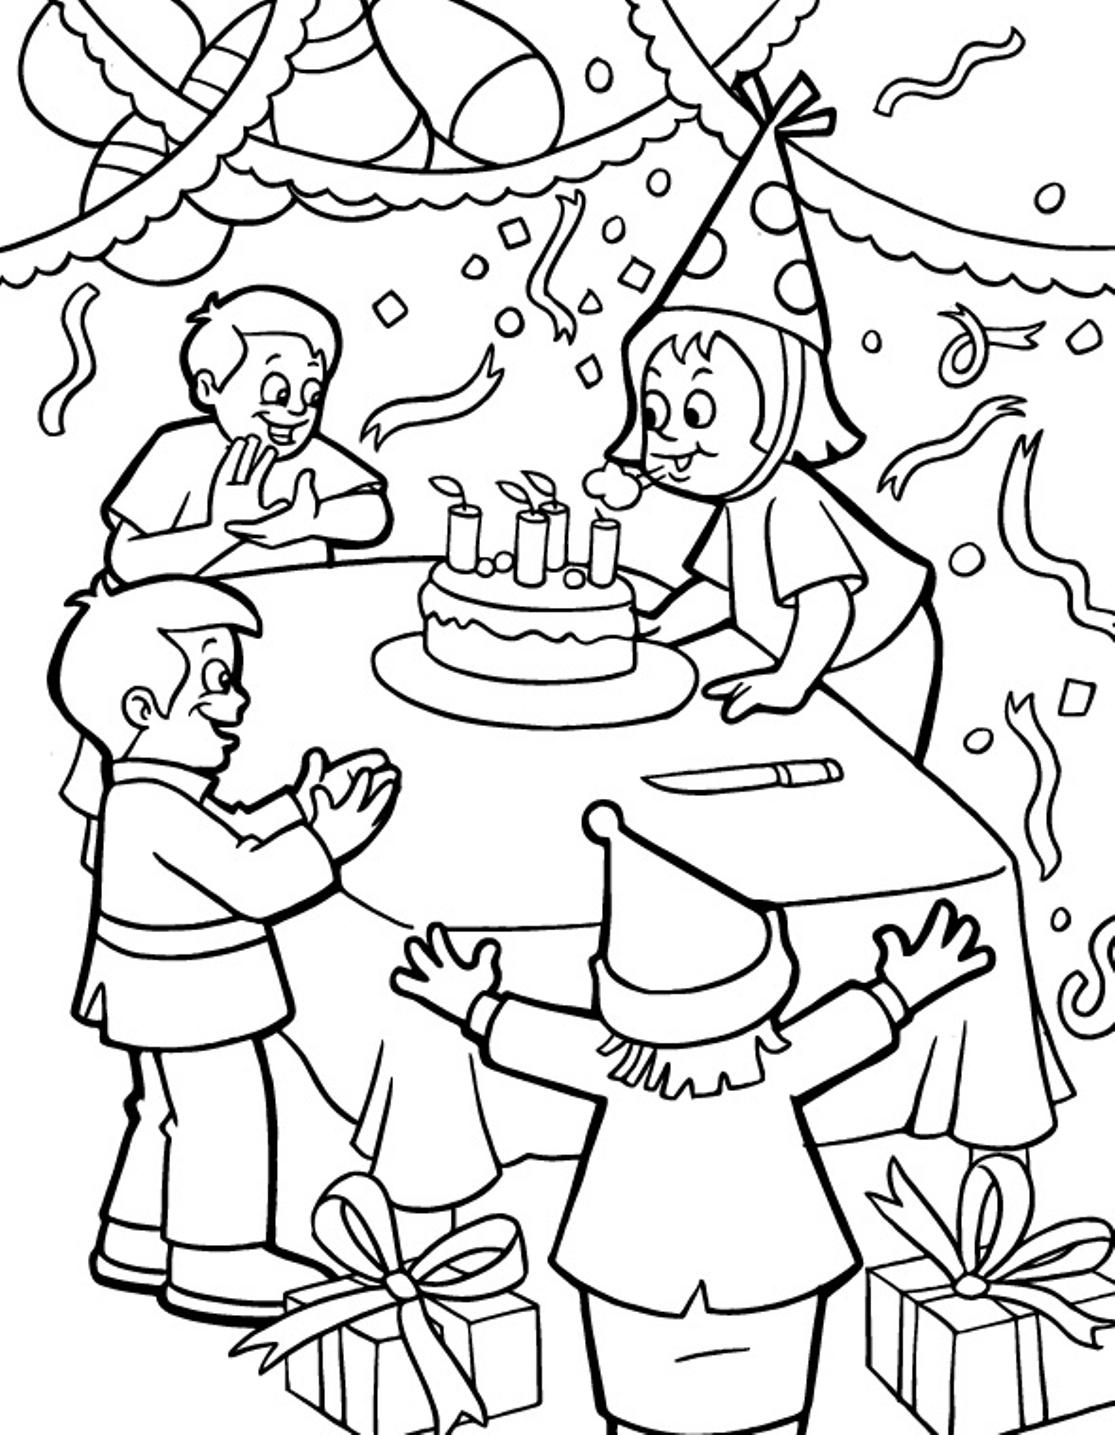 birthday party drawing for kids ; birthday-party-coloring-page-12